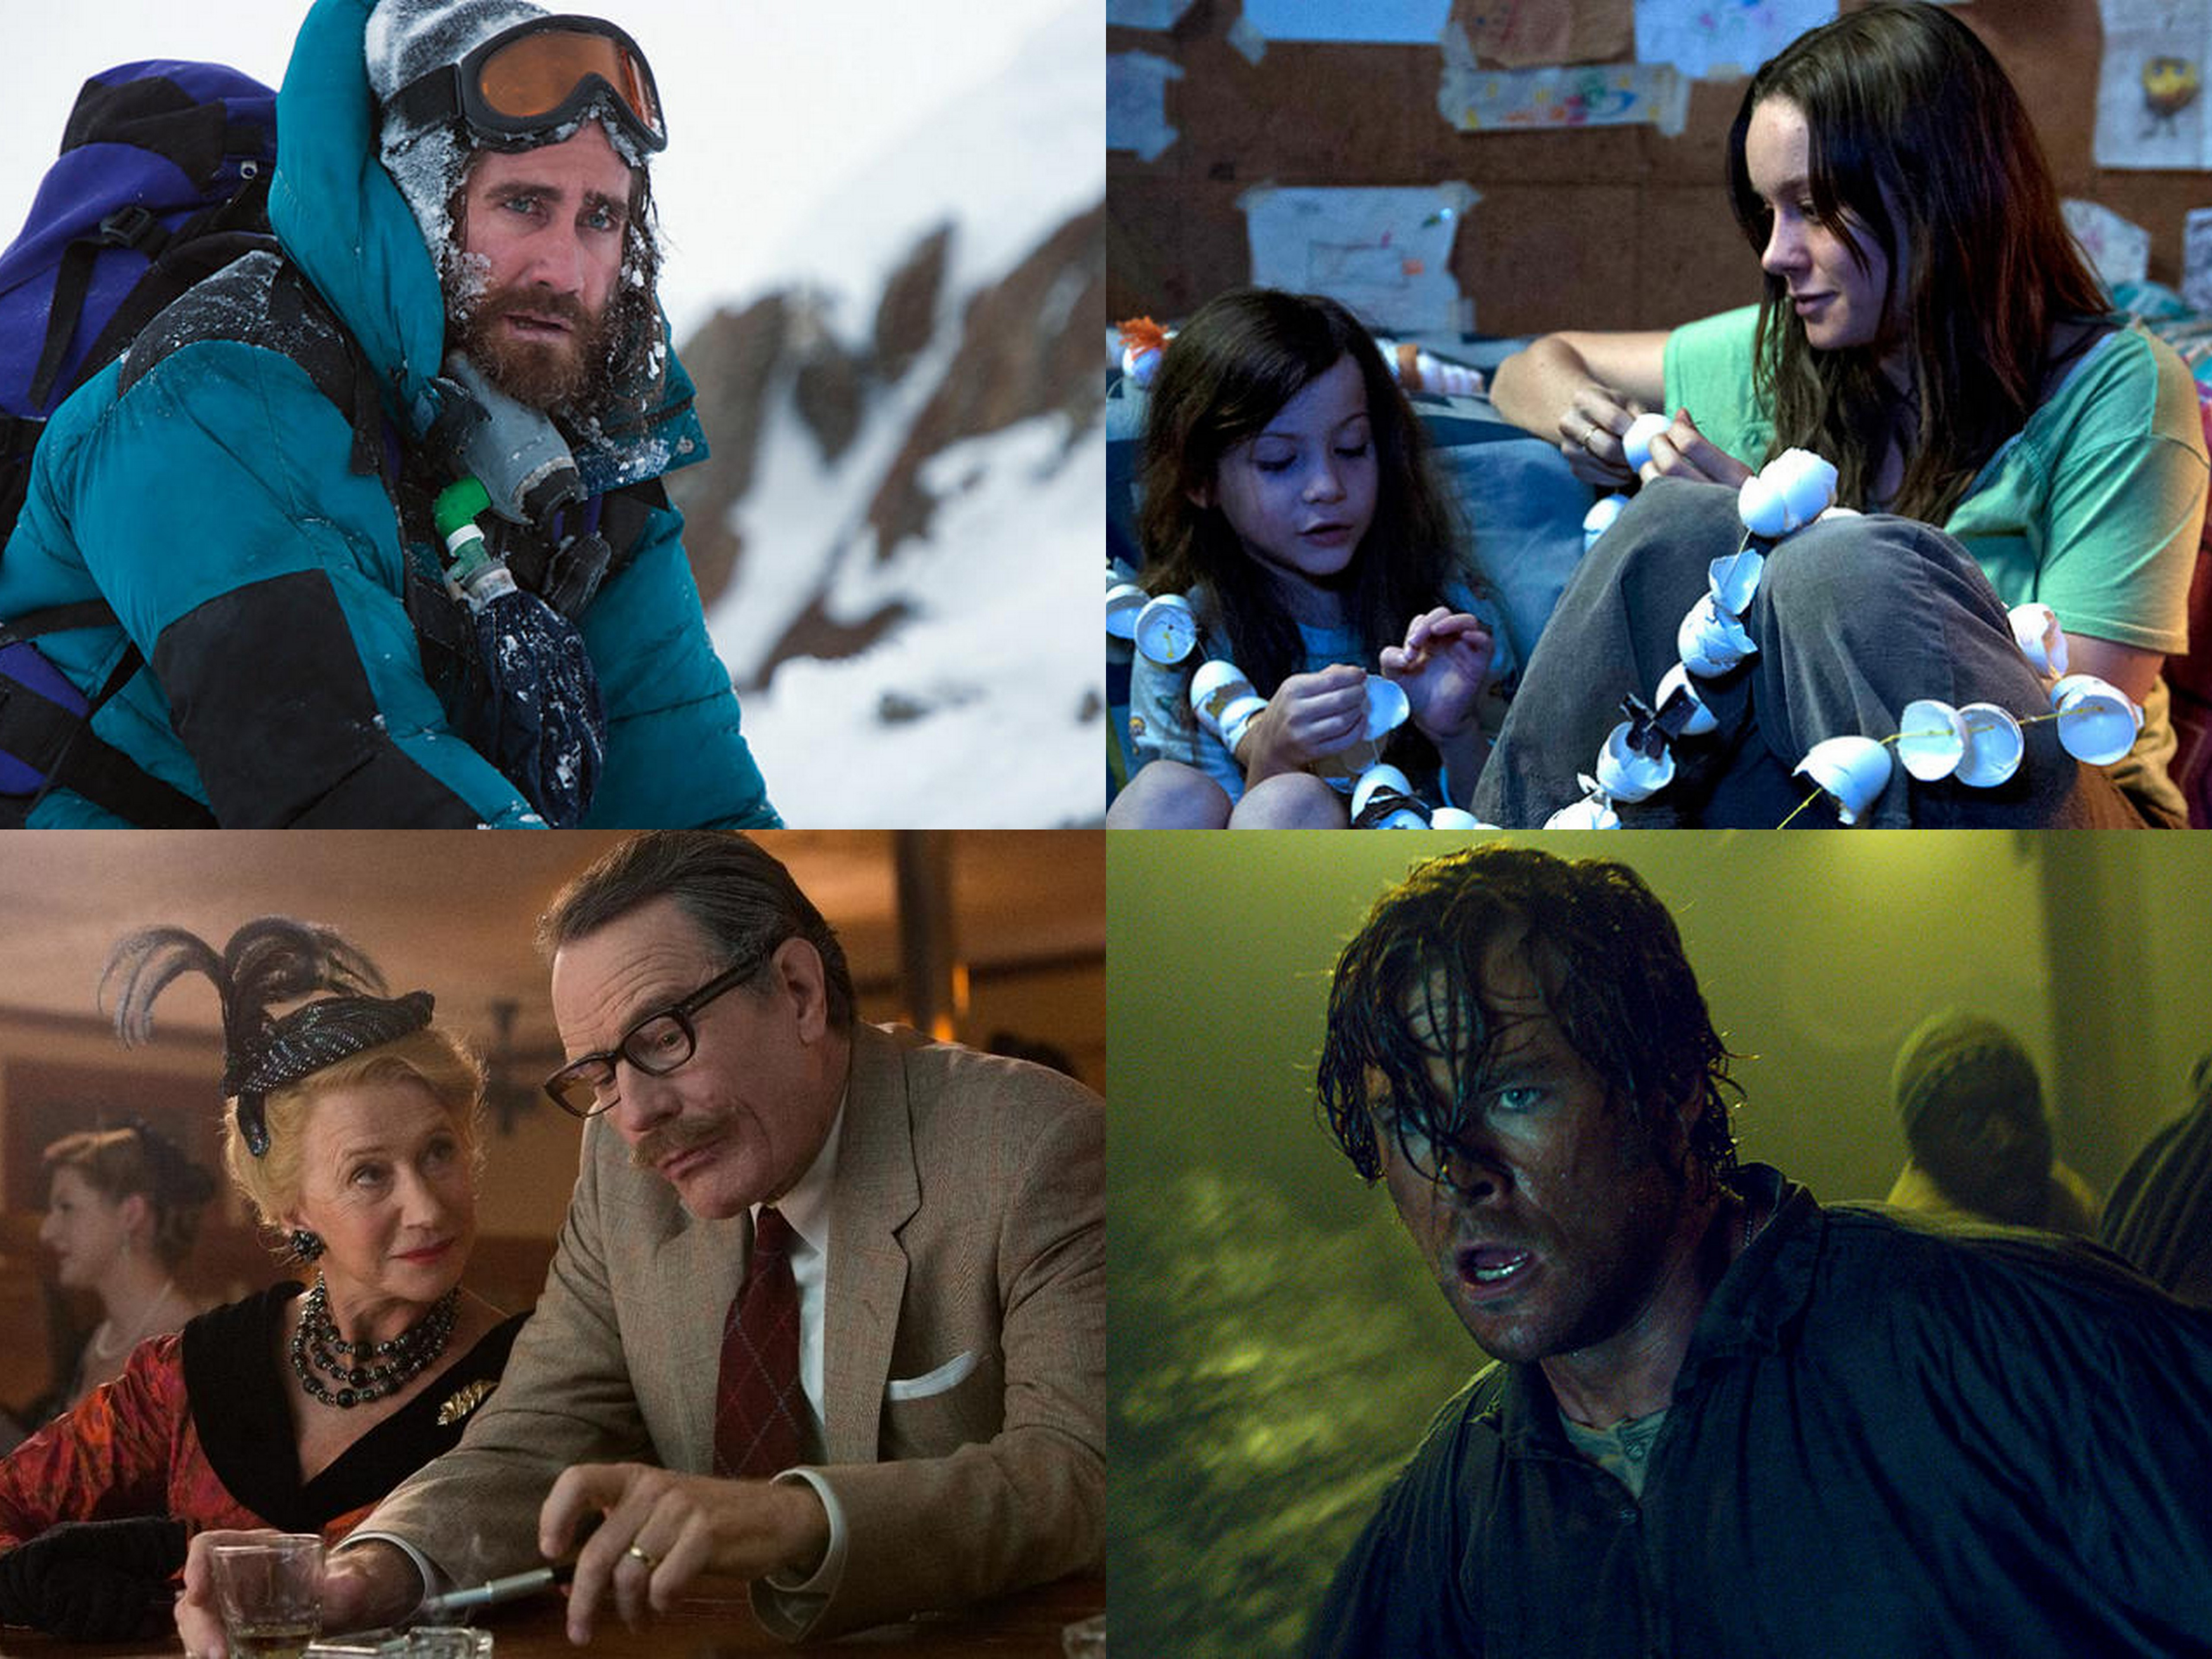 The Indiewire 2015 Fall Preview: The 28 Films We're Most Excited to See (That We Haven't Seen Yet)